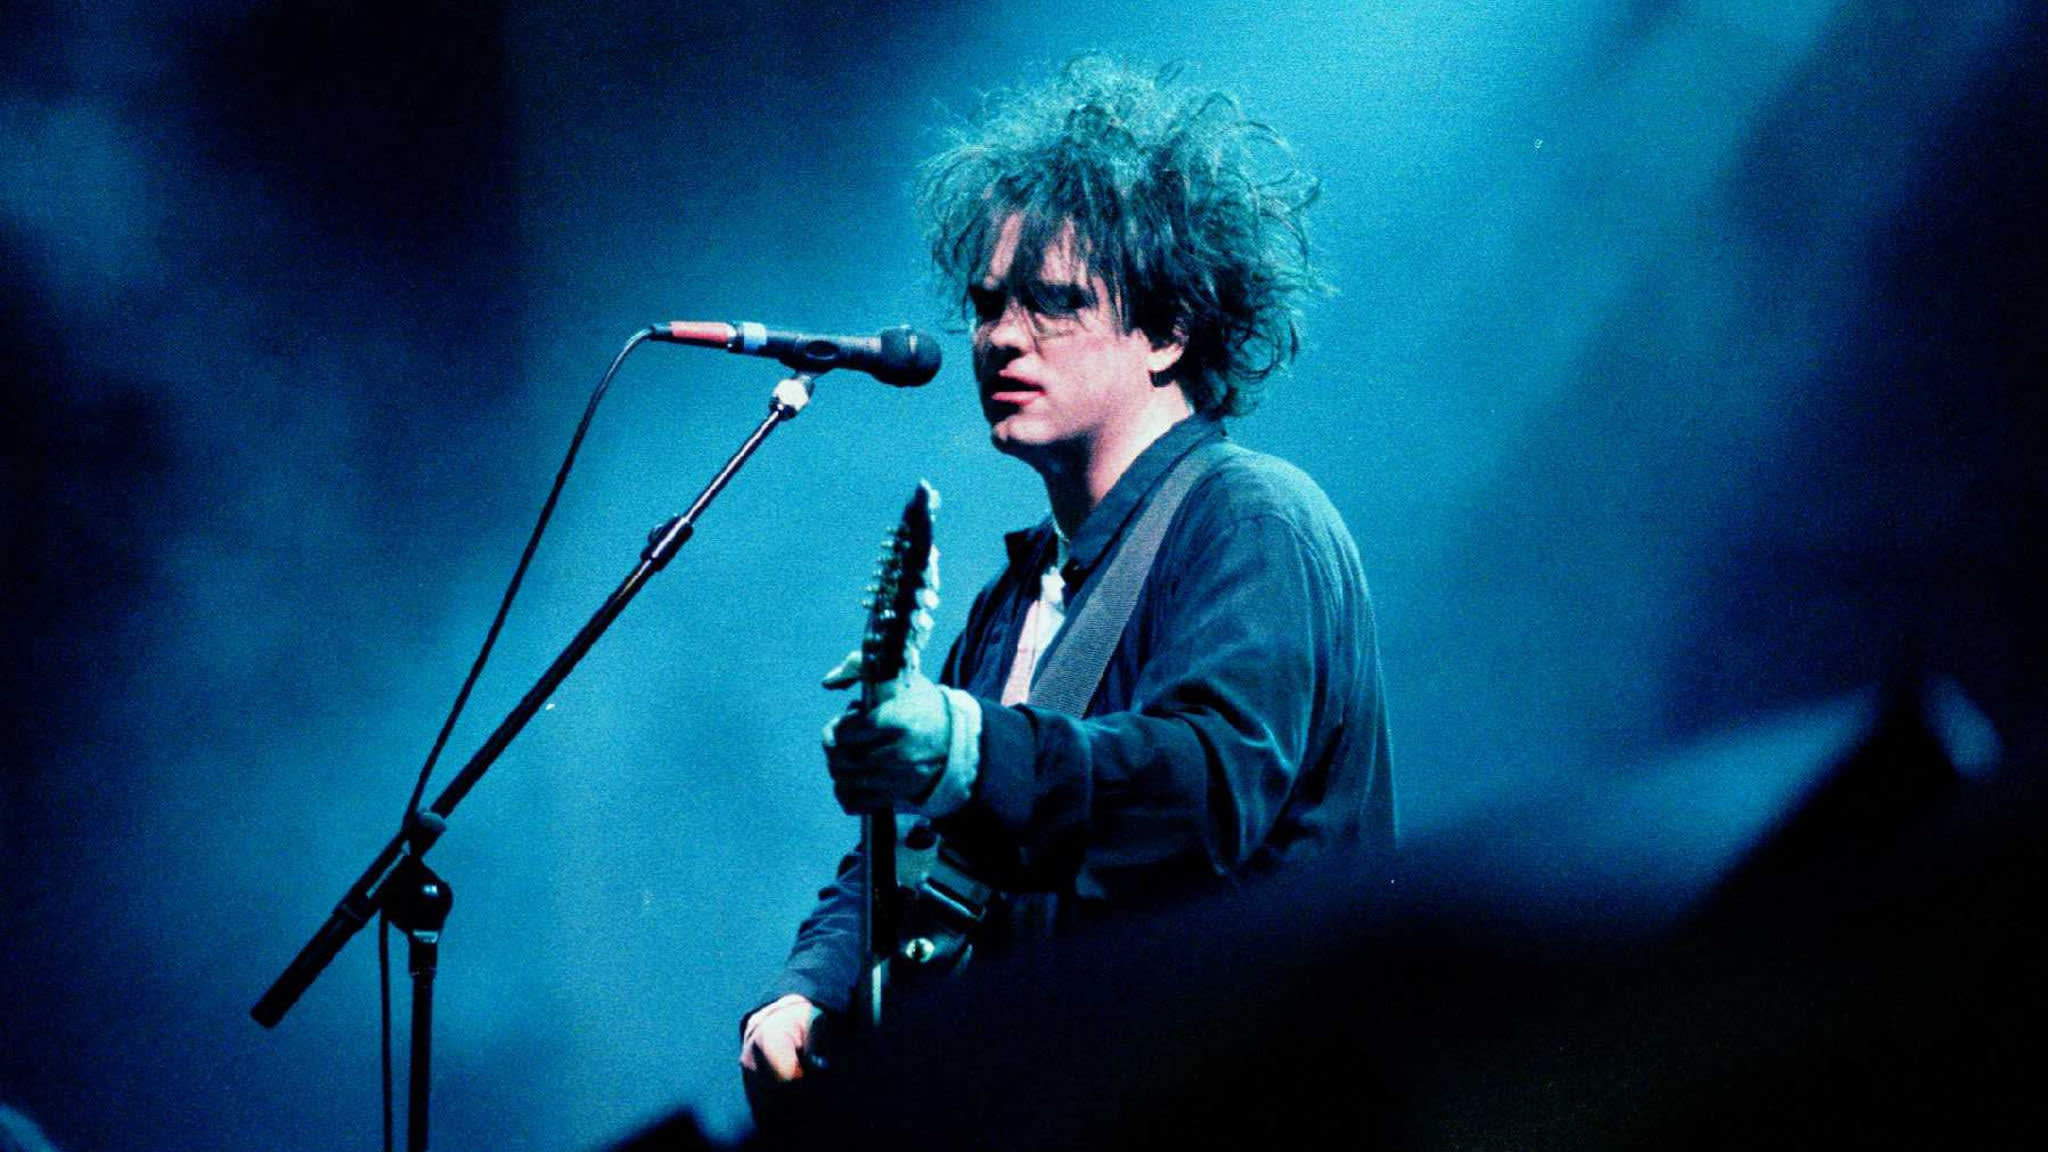 Friday I'm in Love — The Cure's Robert Smith struggled to come up